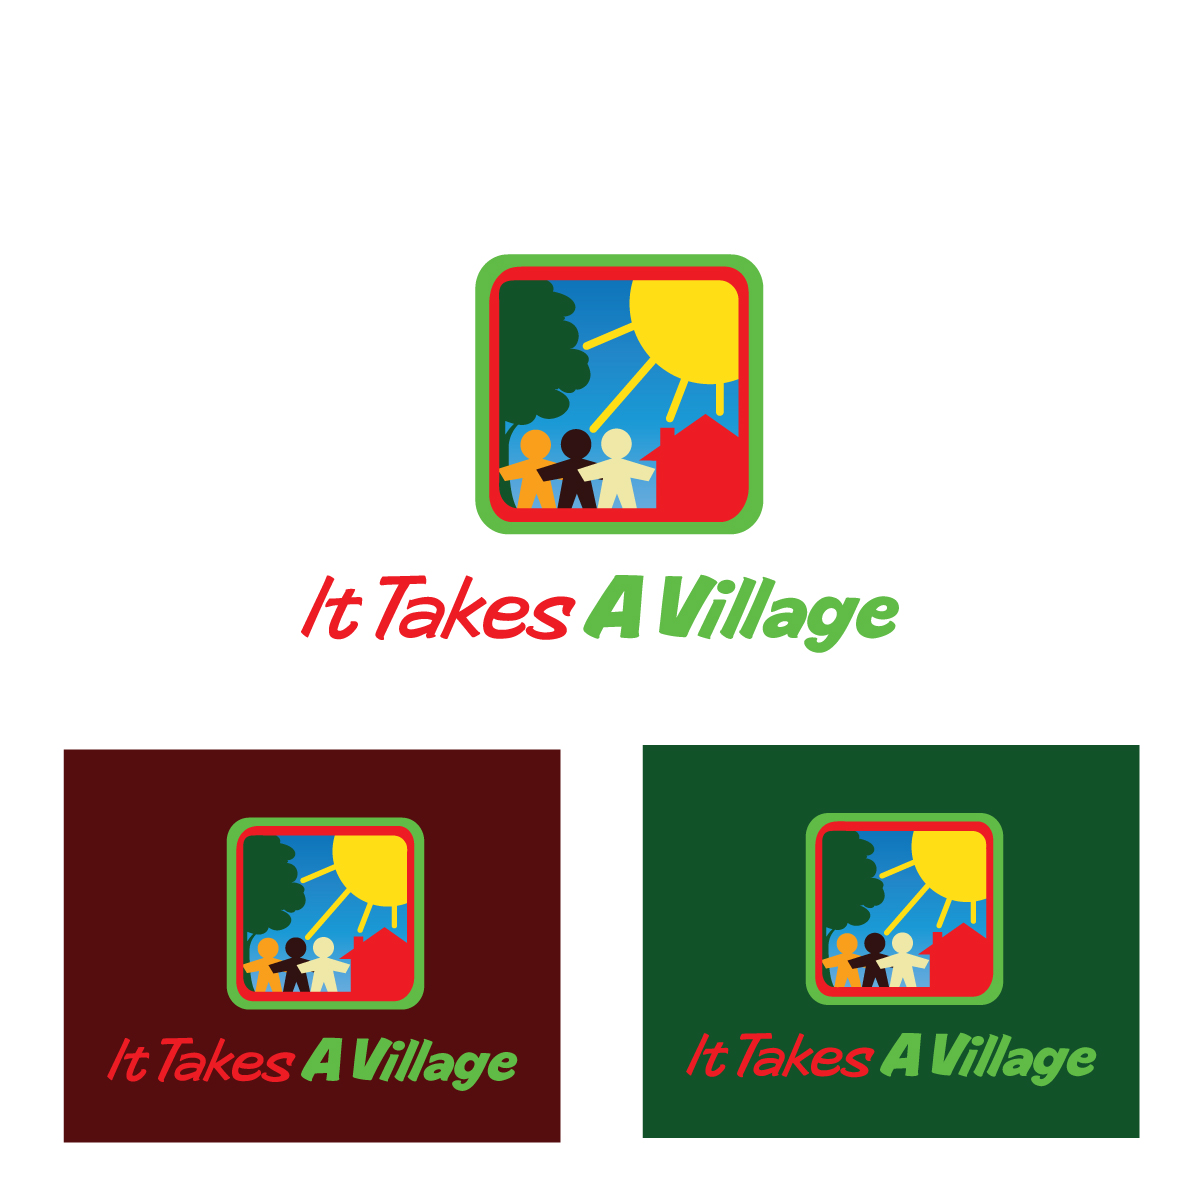 Logo Design by danelav - Entry No. 43 in the Logo Design Contest Captivating Logo Design for It Takes A Village.